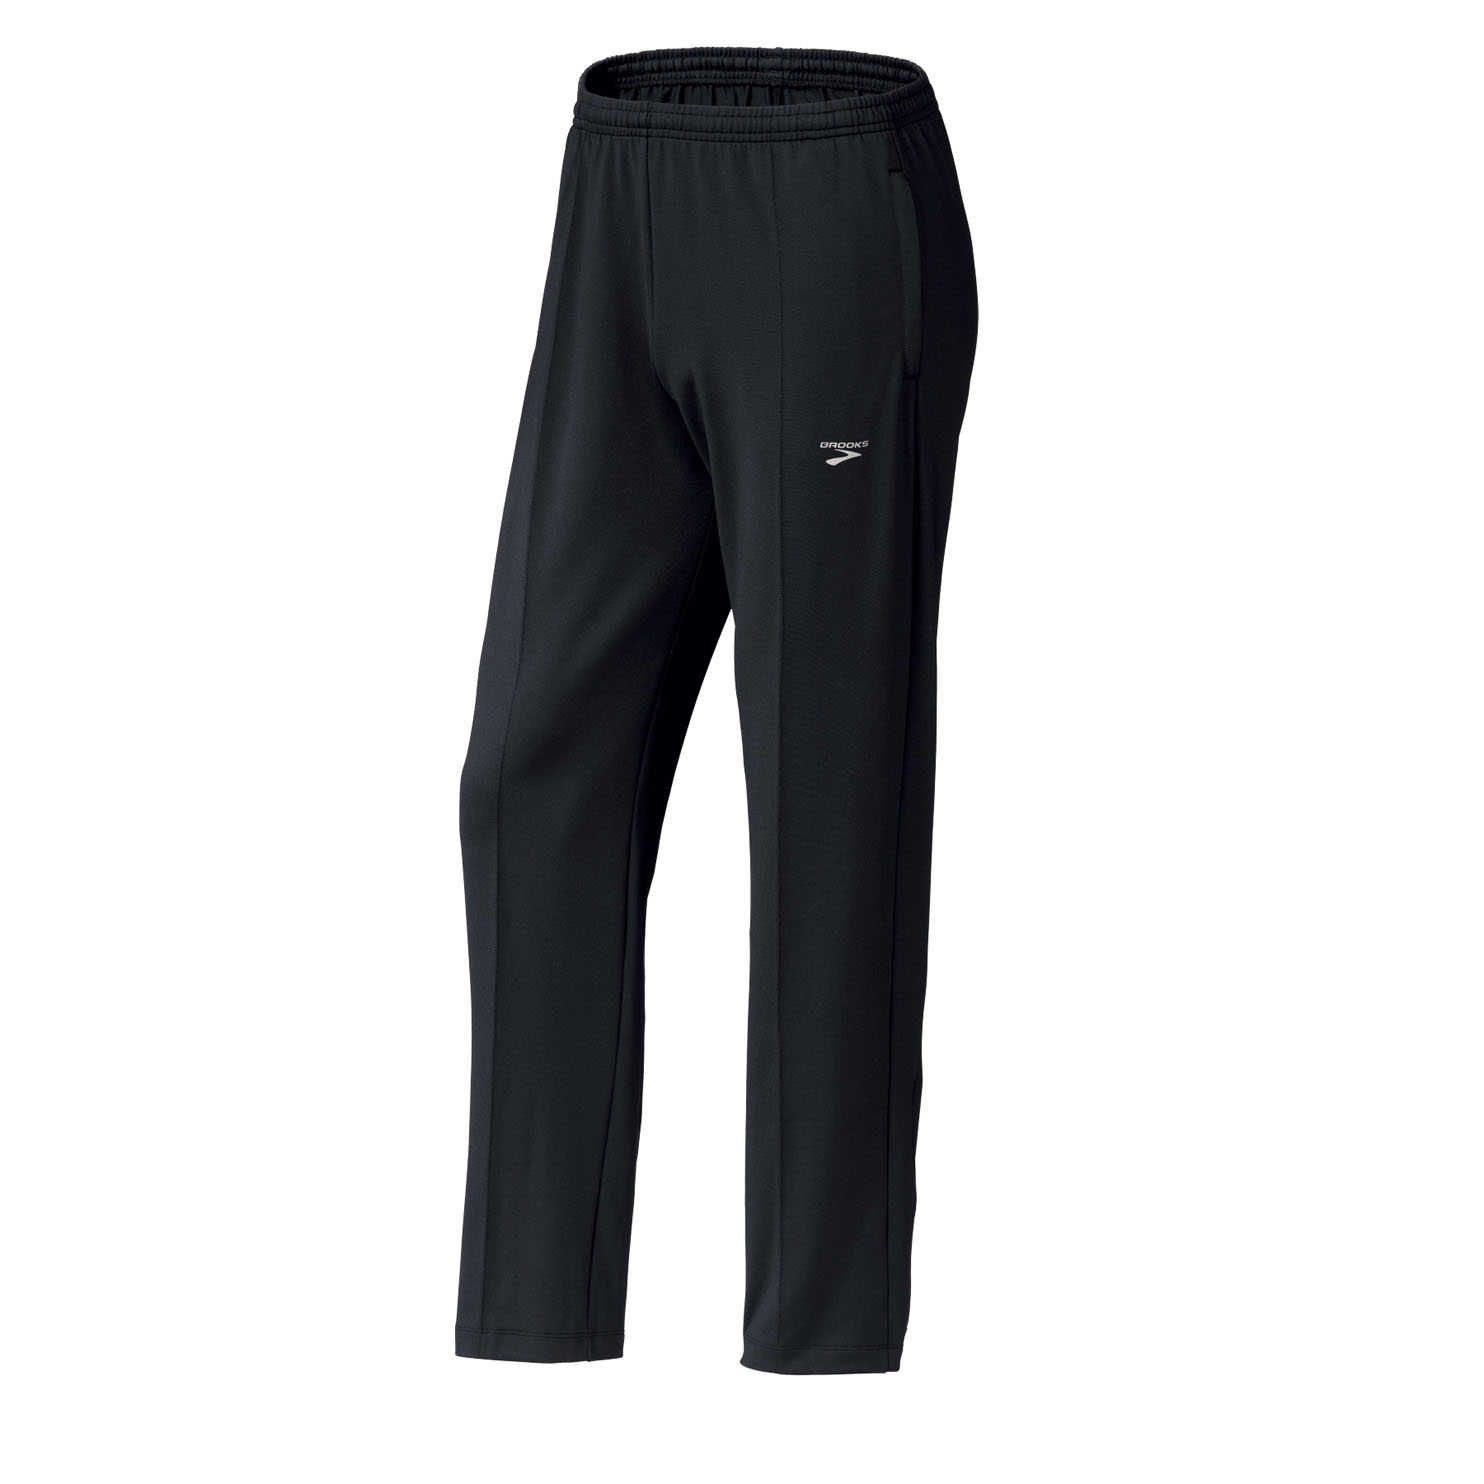 3931ea1f Men's short running pants: Brooks Spartan II Pant | Clothing | Tall ...